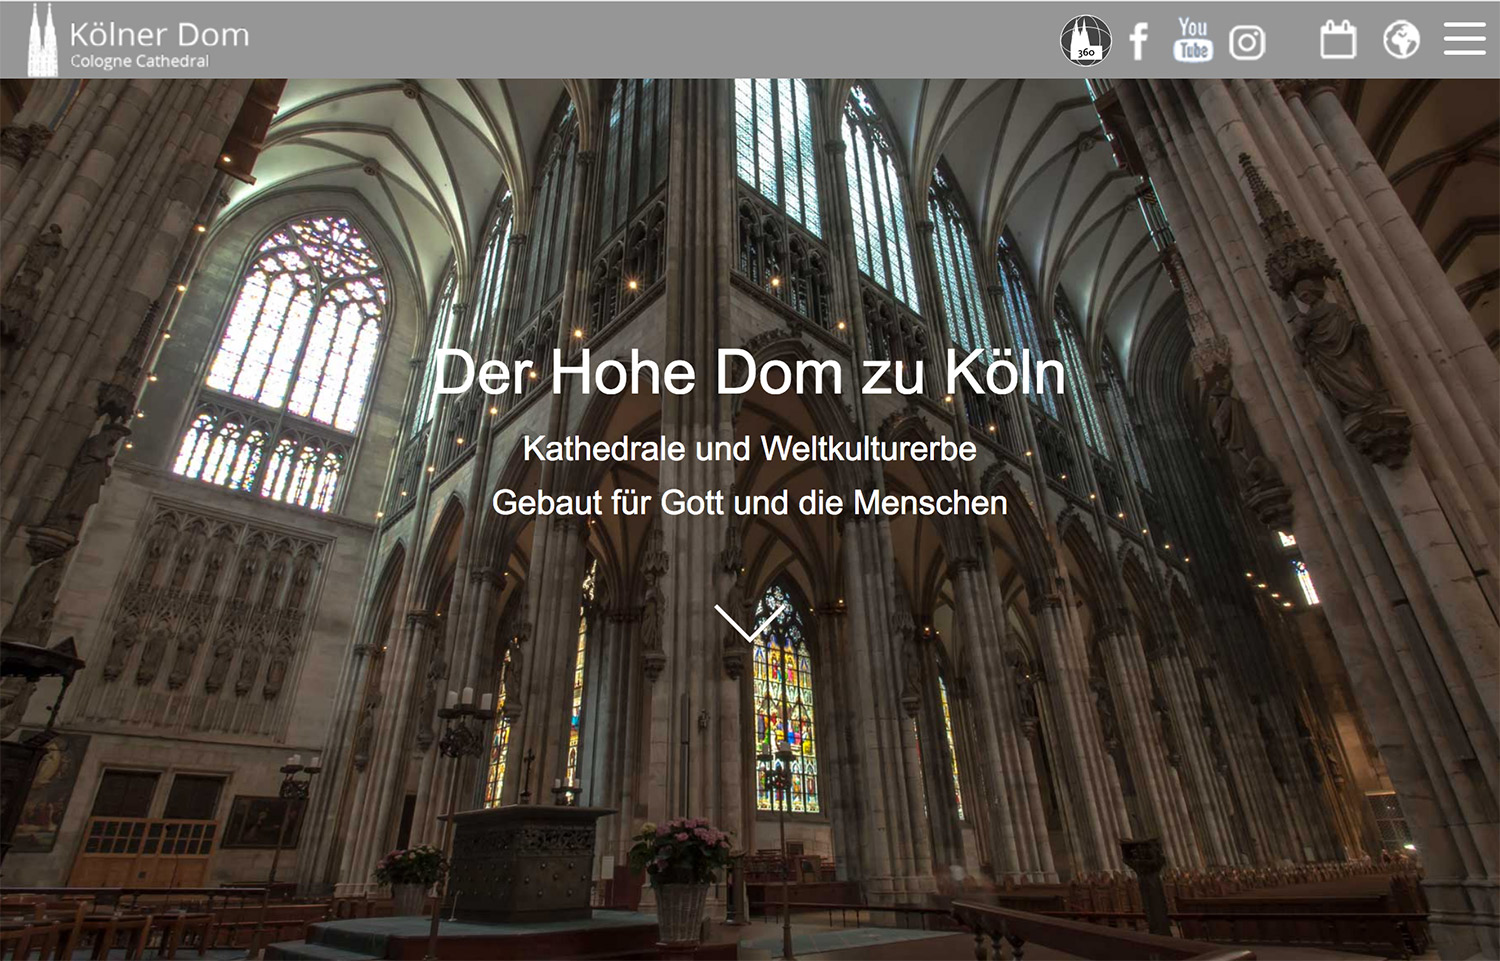 Kölner Dom Website